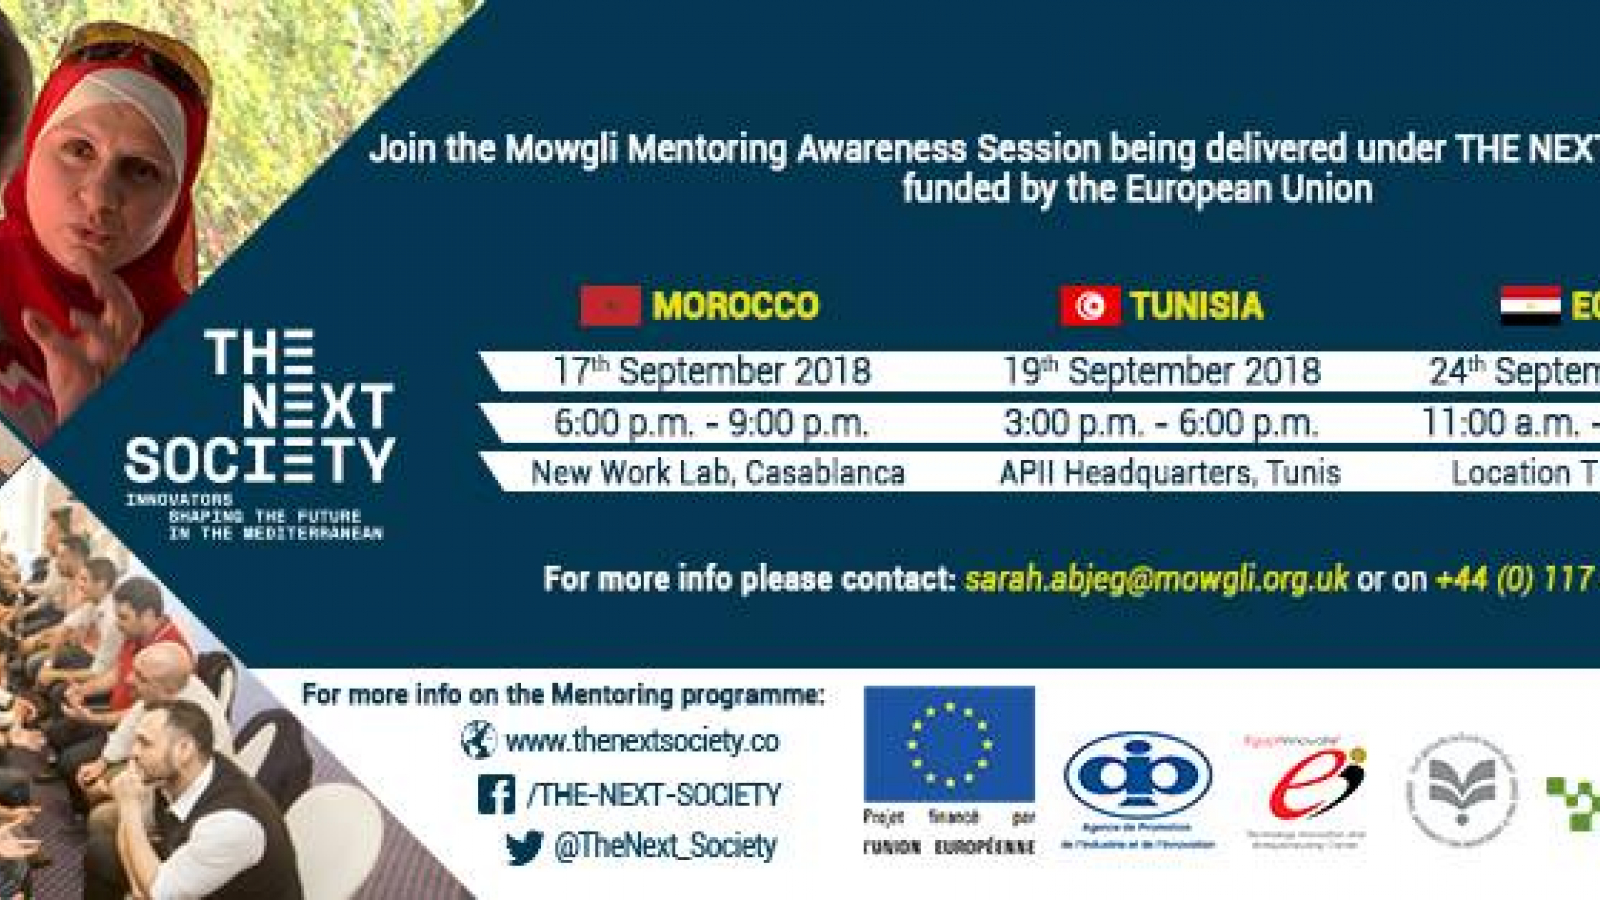 Mowgli Awareness sessions agenda - September 2018